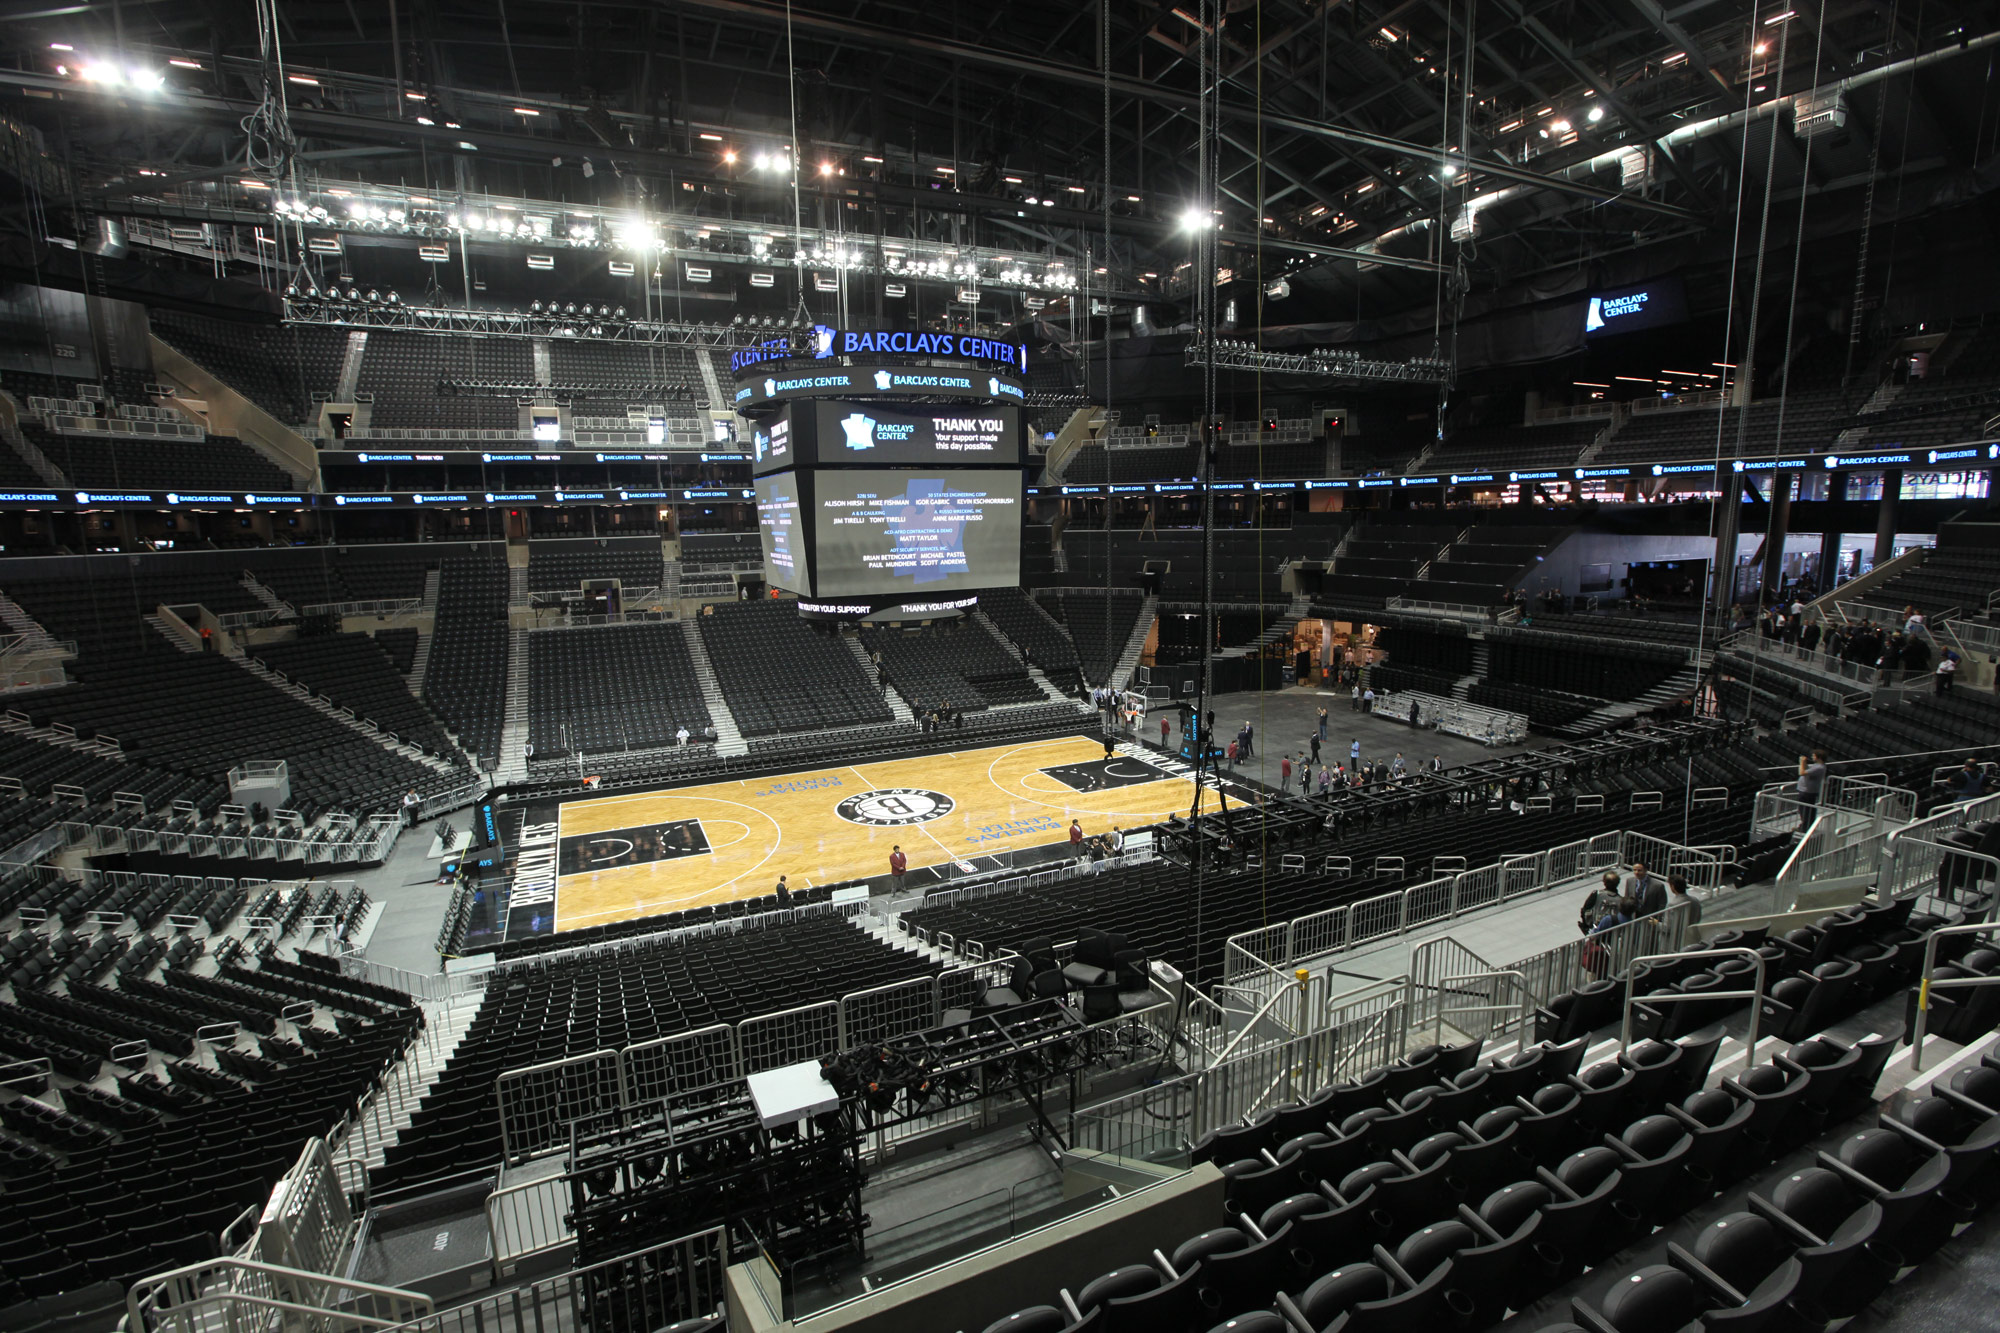 Barclays Center Structure Ominy